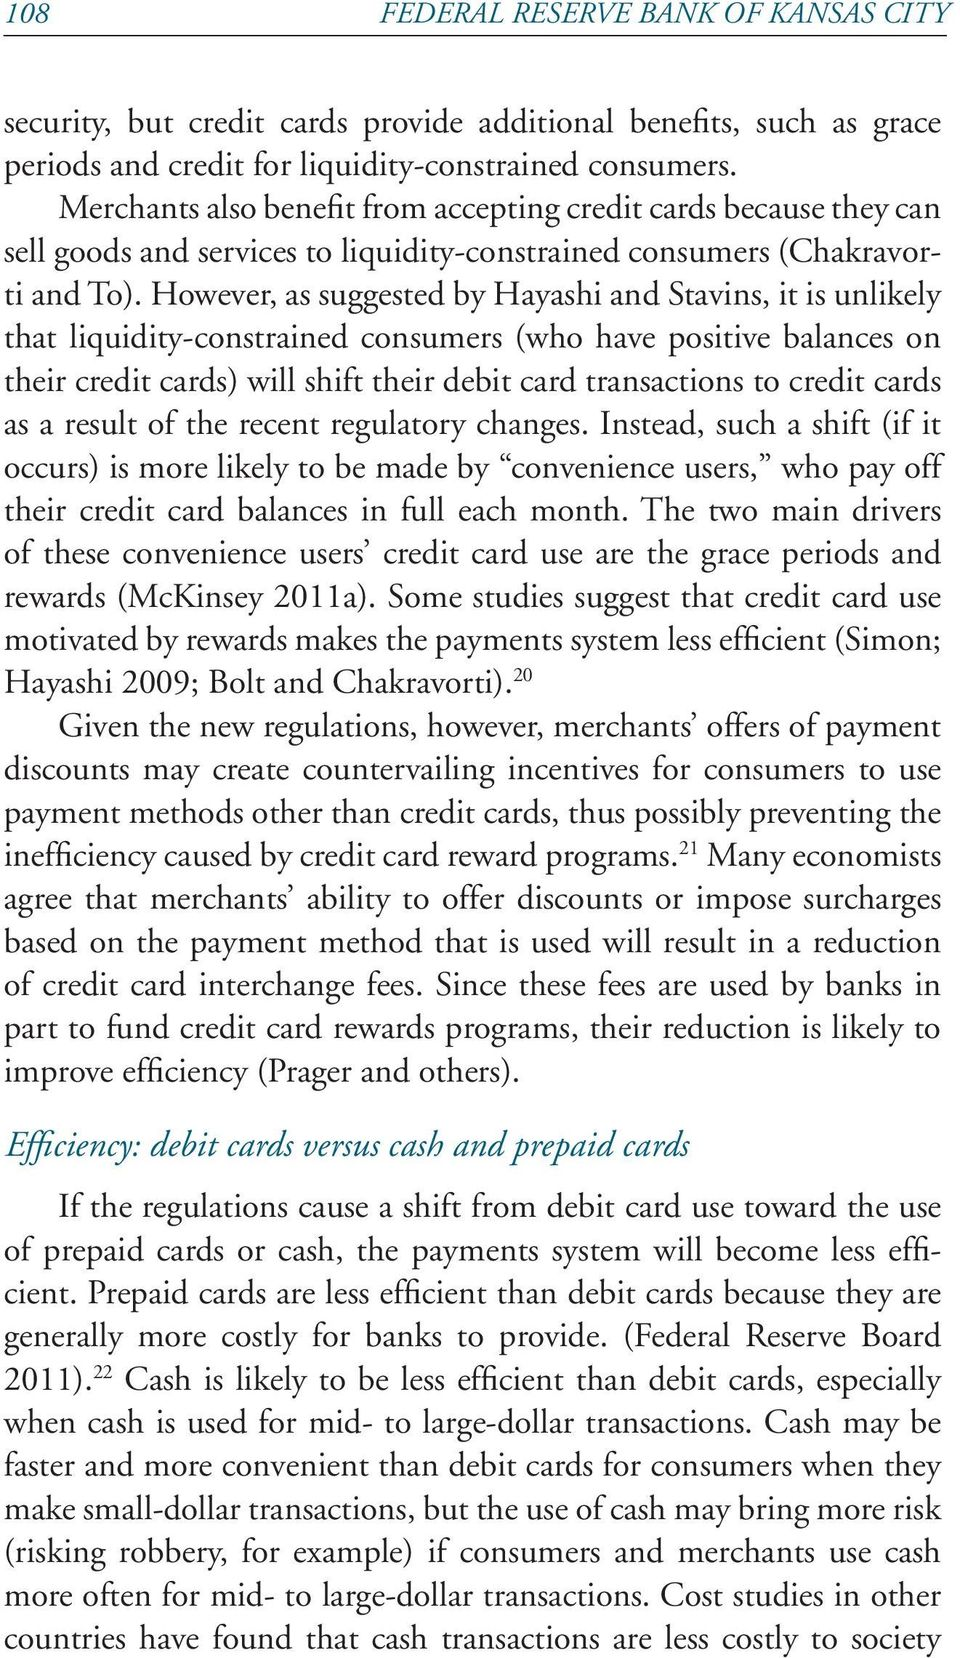 However, as suggested by Hayashi and Stavins, it is unlikely that liquidity-constrained consumers (who have positive balances on their credit cards) will shift their debit card transactions to credit